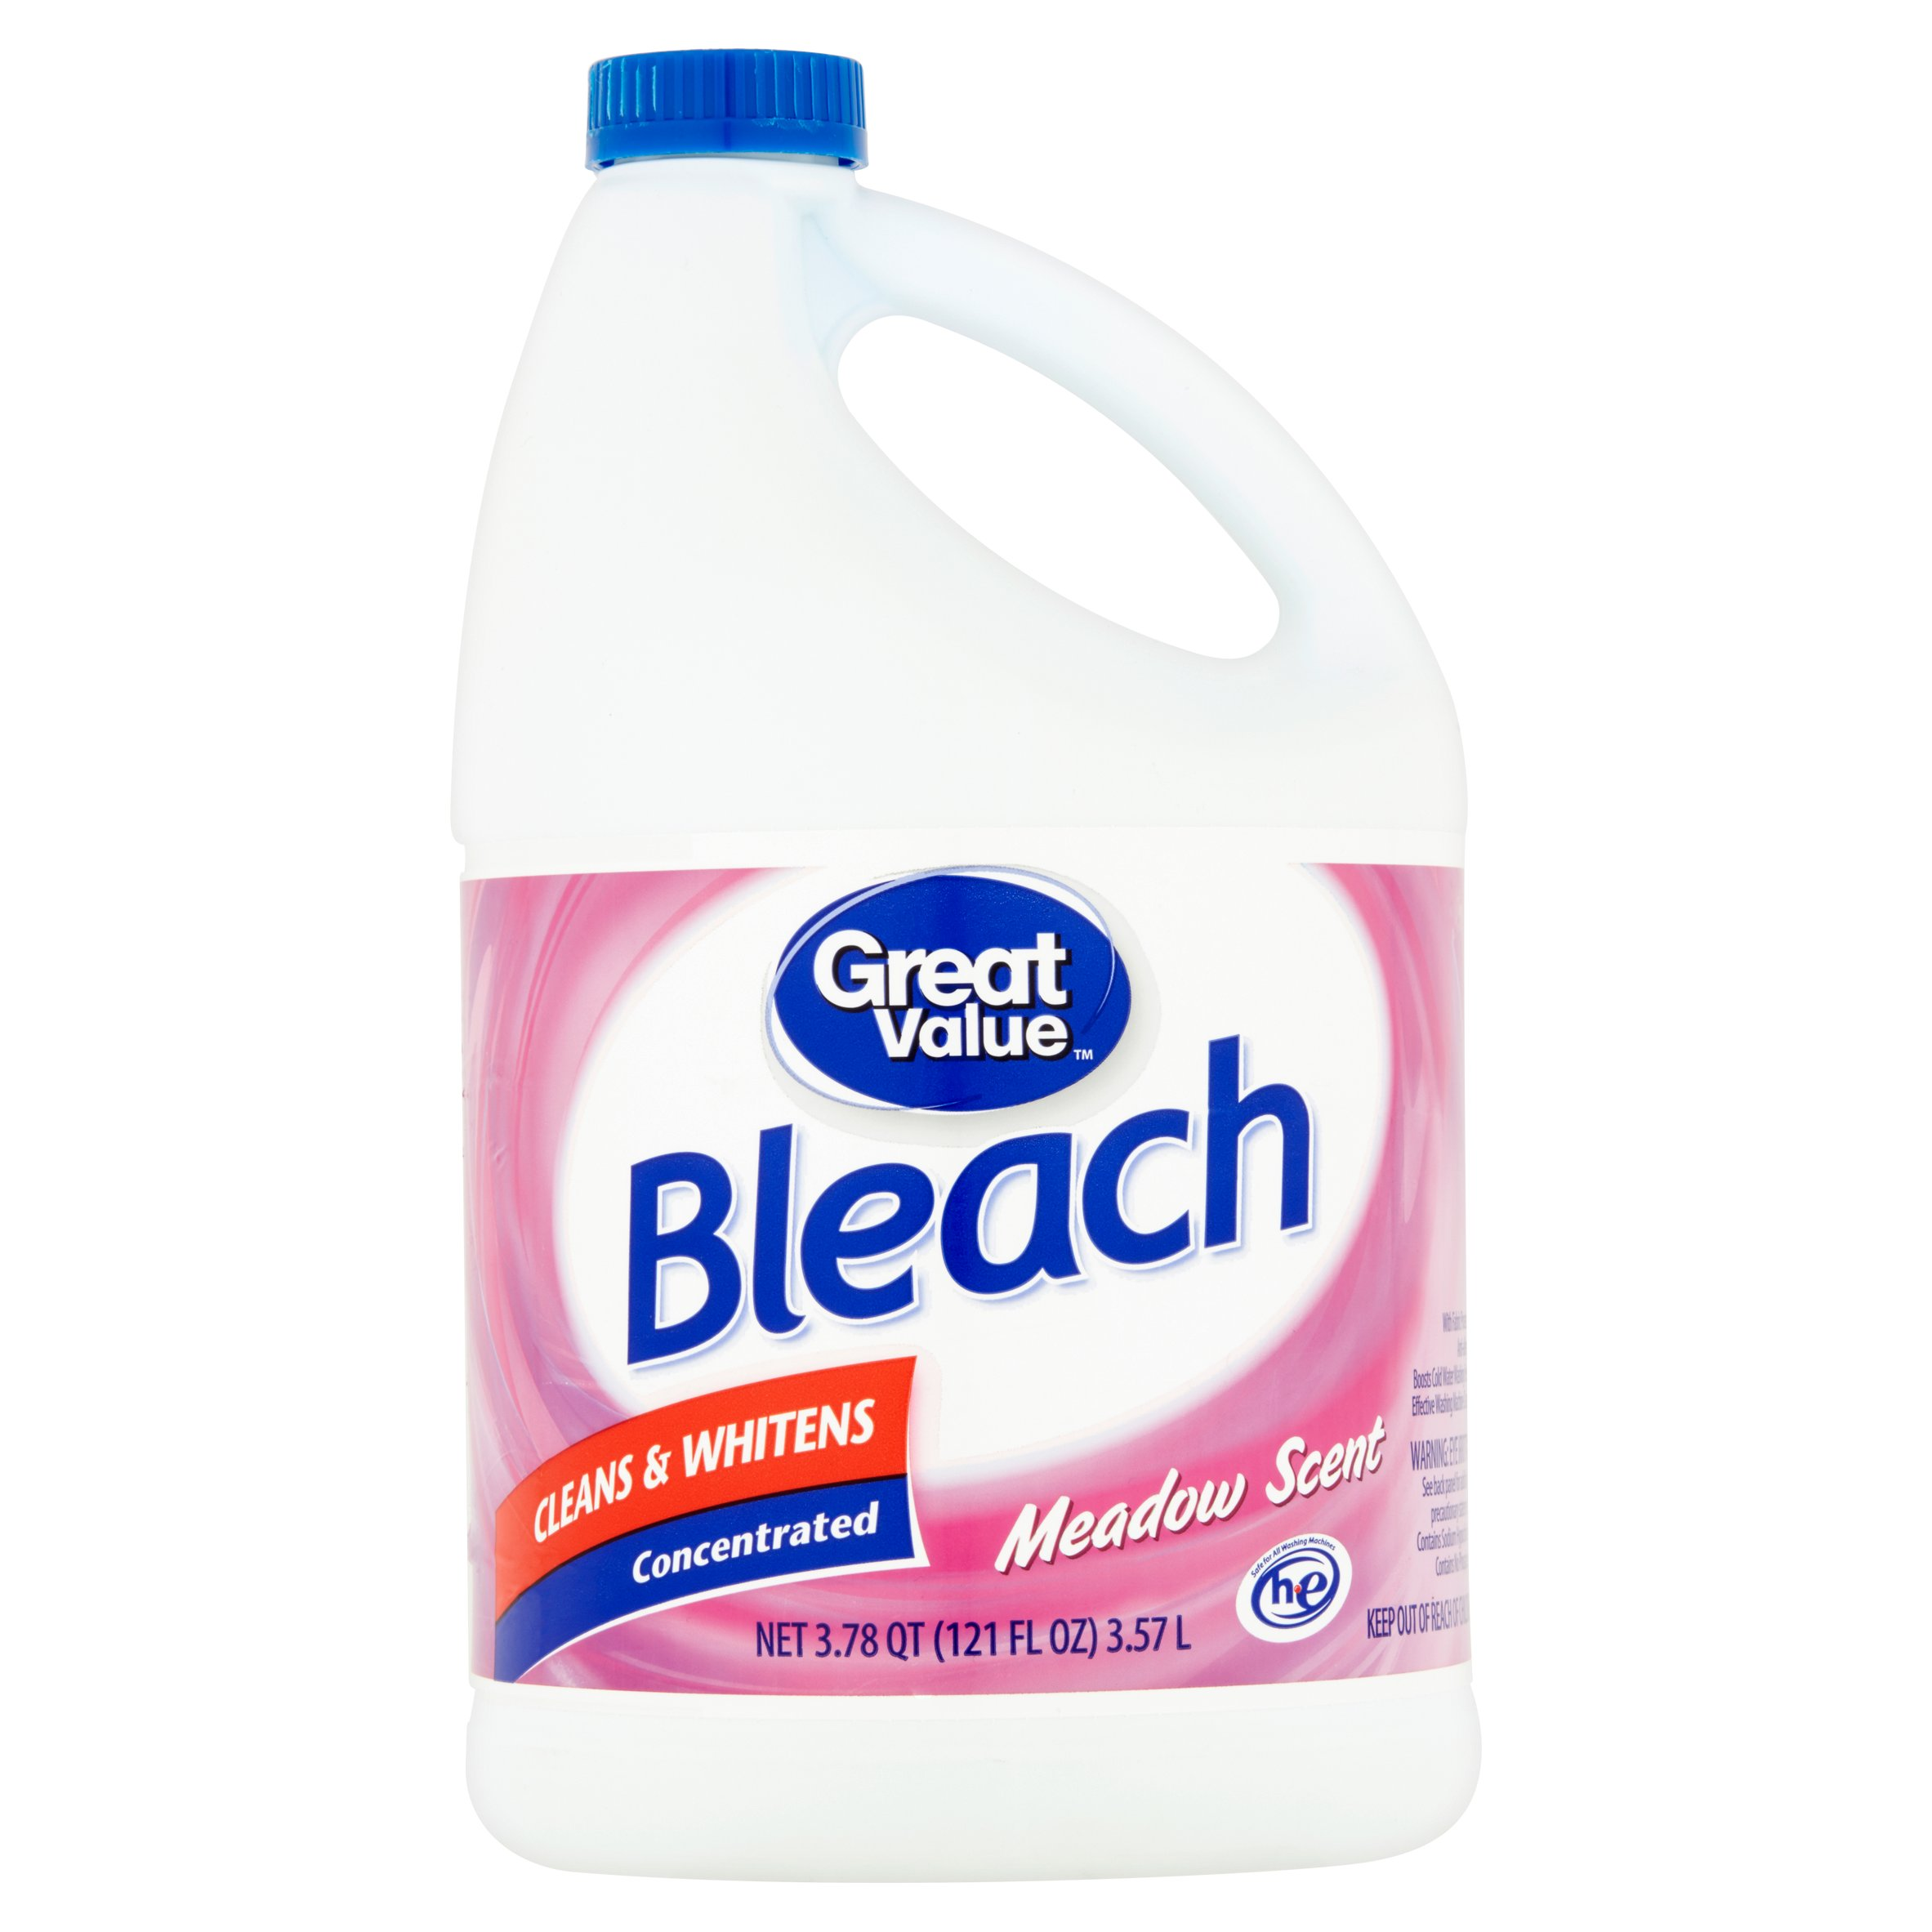 Great Value Bleach, Meadow Scent, 121 oz